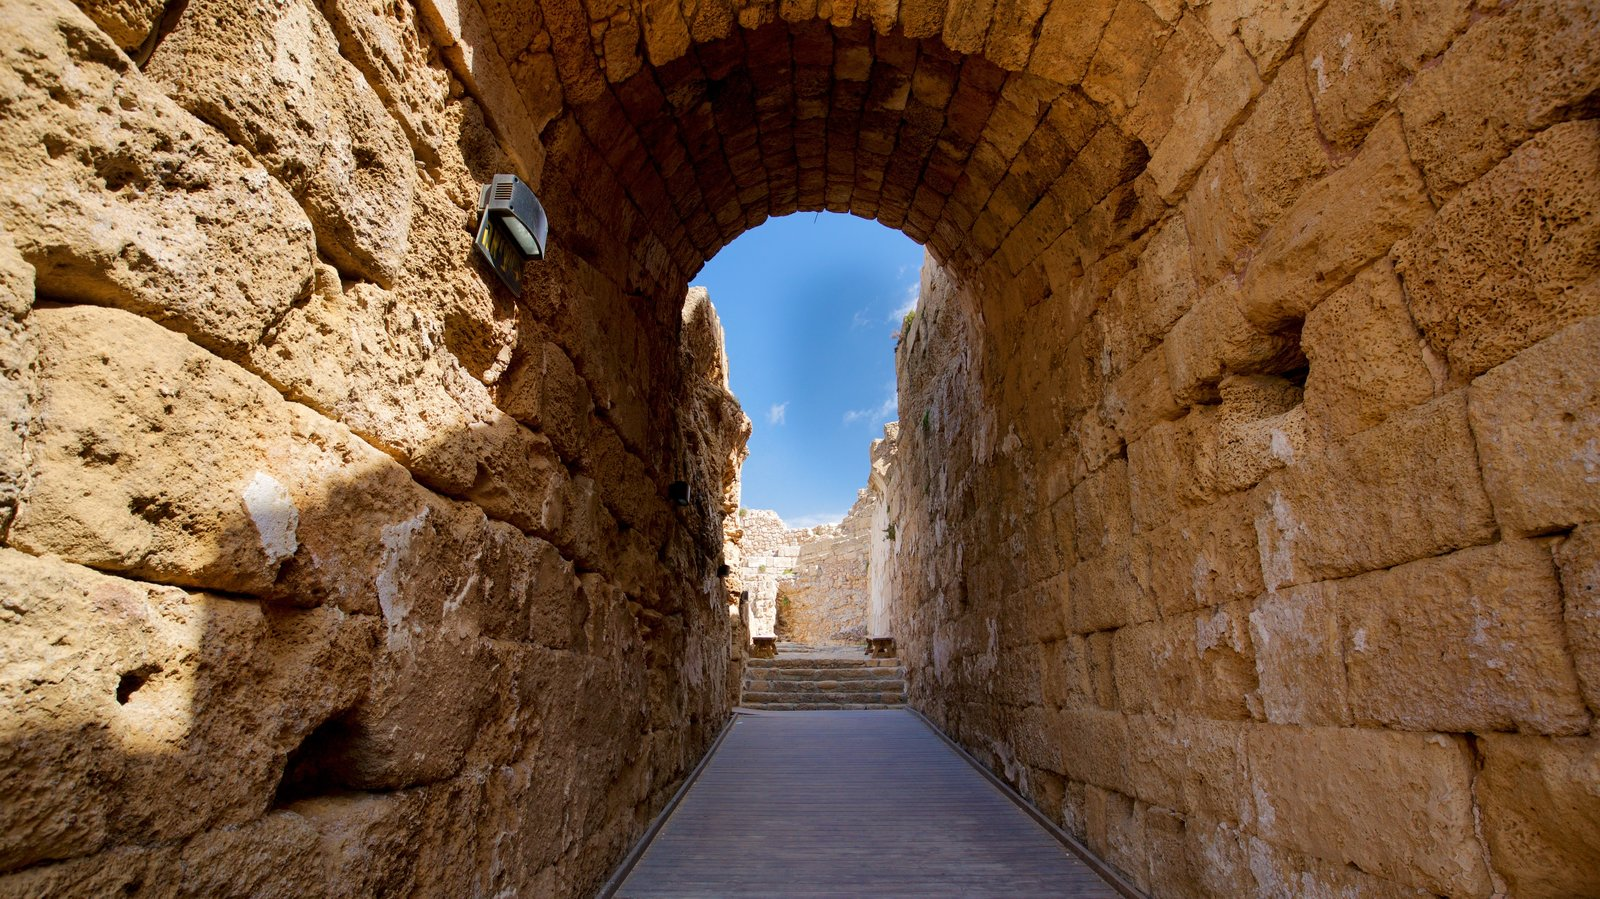 Caesarea Amphitheater which includes heritage elements